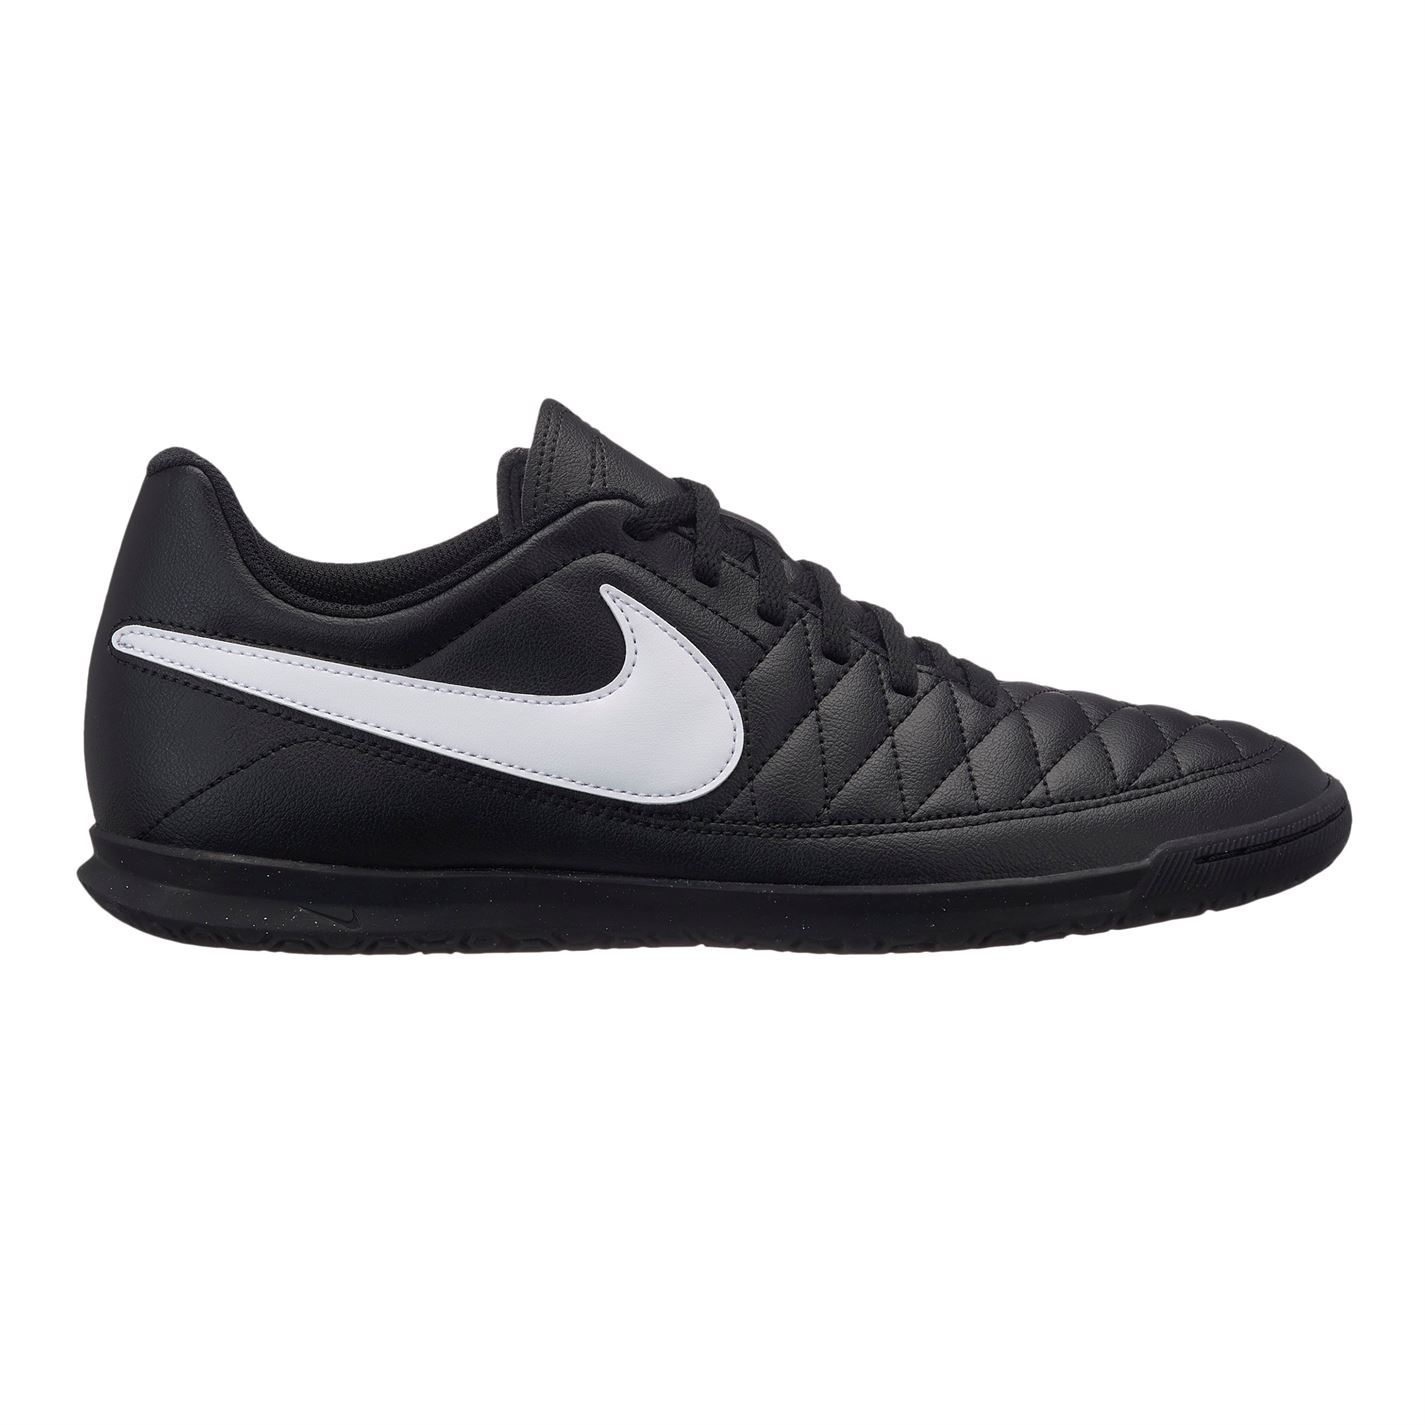 Nike-majestry-Indoor-Football-Baskets-Pour-Homme-Football-Futsal-Chaussures-Baskets-Bottes miniature 20